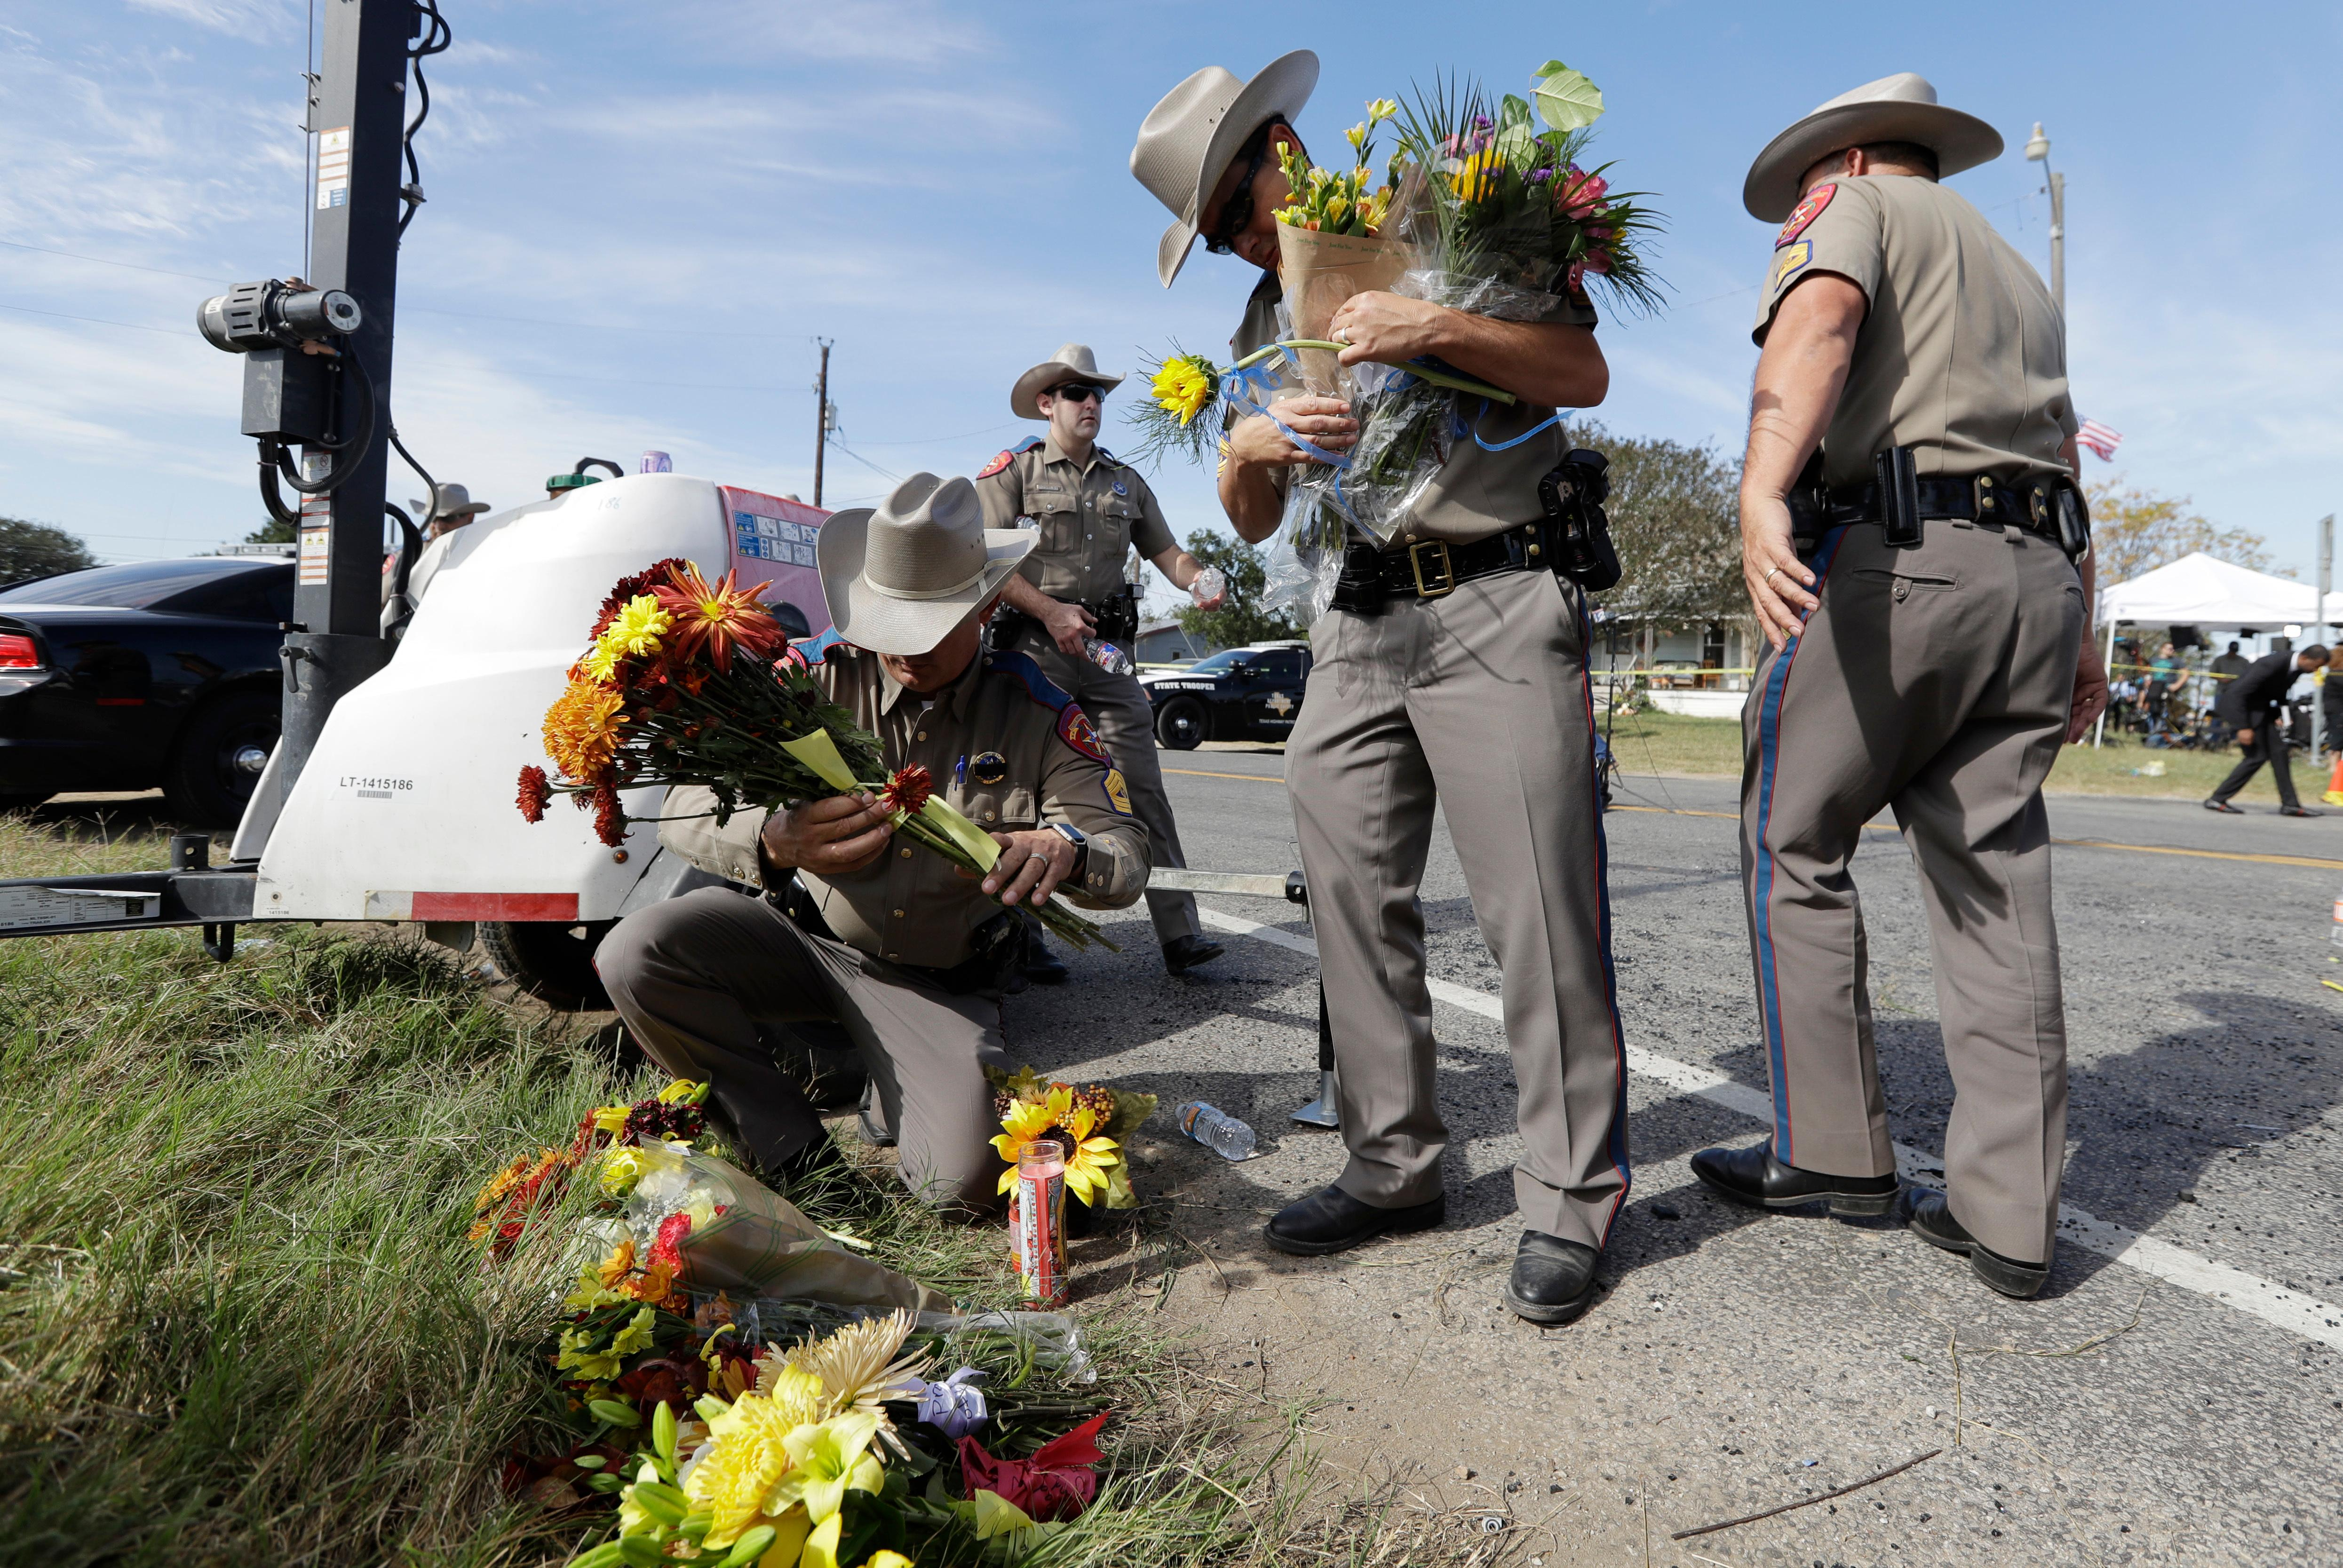 Law enforcement officials move flowers left at the scene of a shooting at the First Baptist Church of Sutherland Springs, Monday, Nov. 6, 2017, in Sutherland Springs, Texas. A man opened fire inside the church in the small South Texas community on Sunday, killing and wounding many. (AP Photo/Eric Gay)